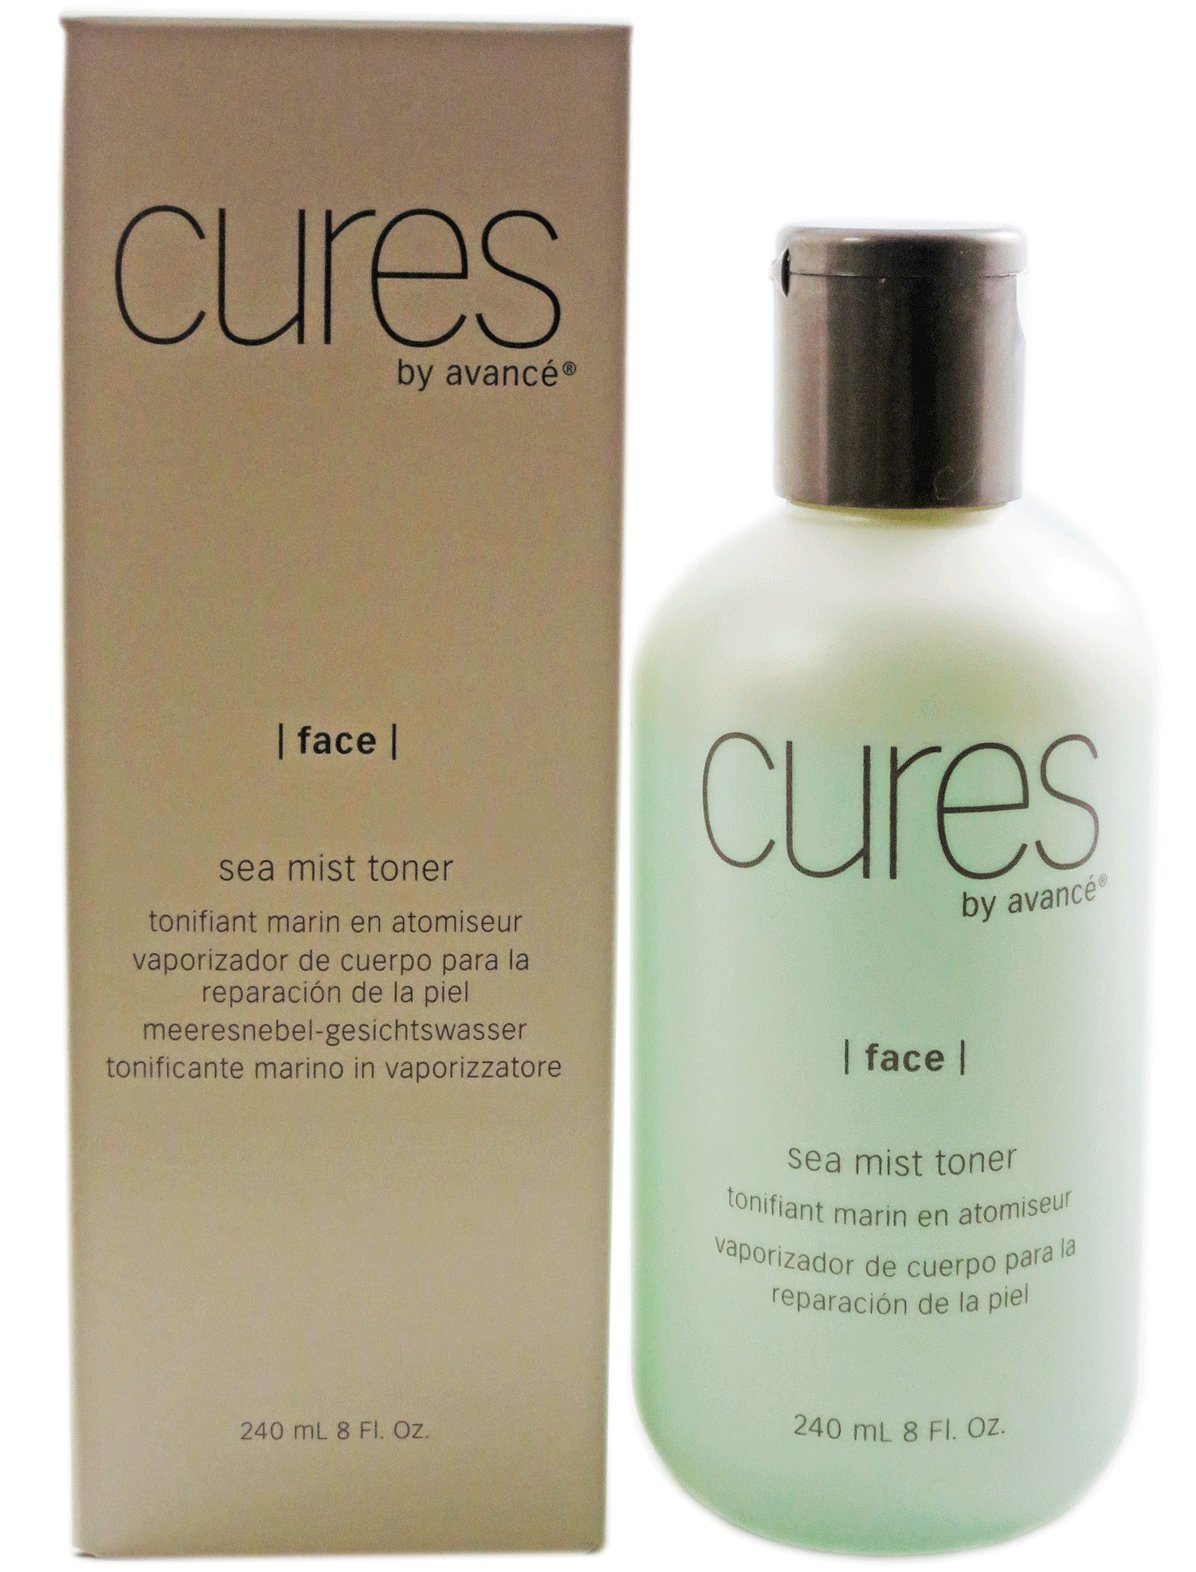 Cures By Avance Algae Deep Pore Cleanser 4 oz Elizavecca, Hell-Pore Clean Up, AHA Fruit Toner , 200 ml(pack of 1)